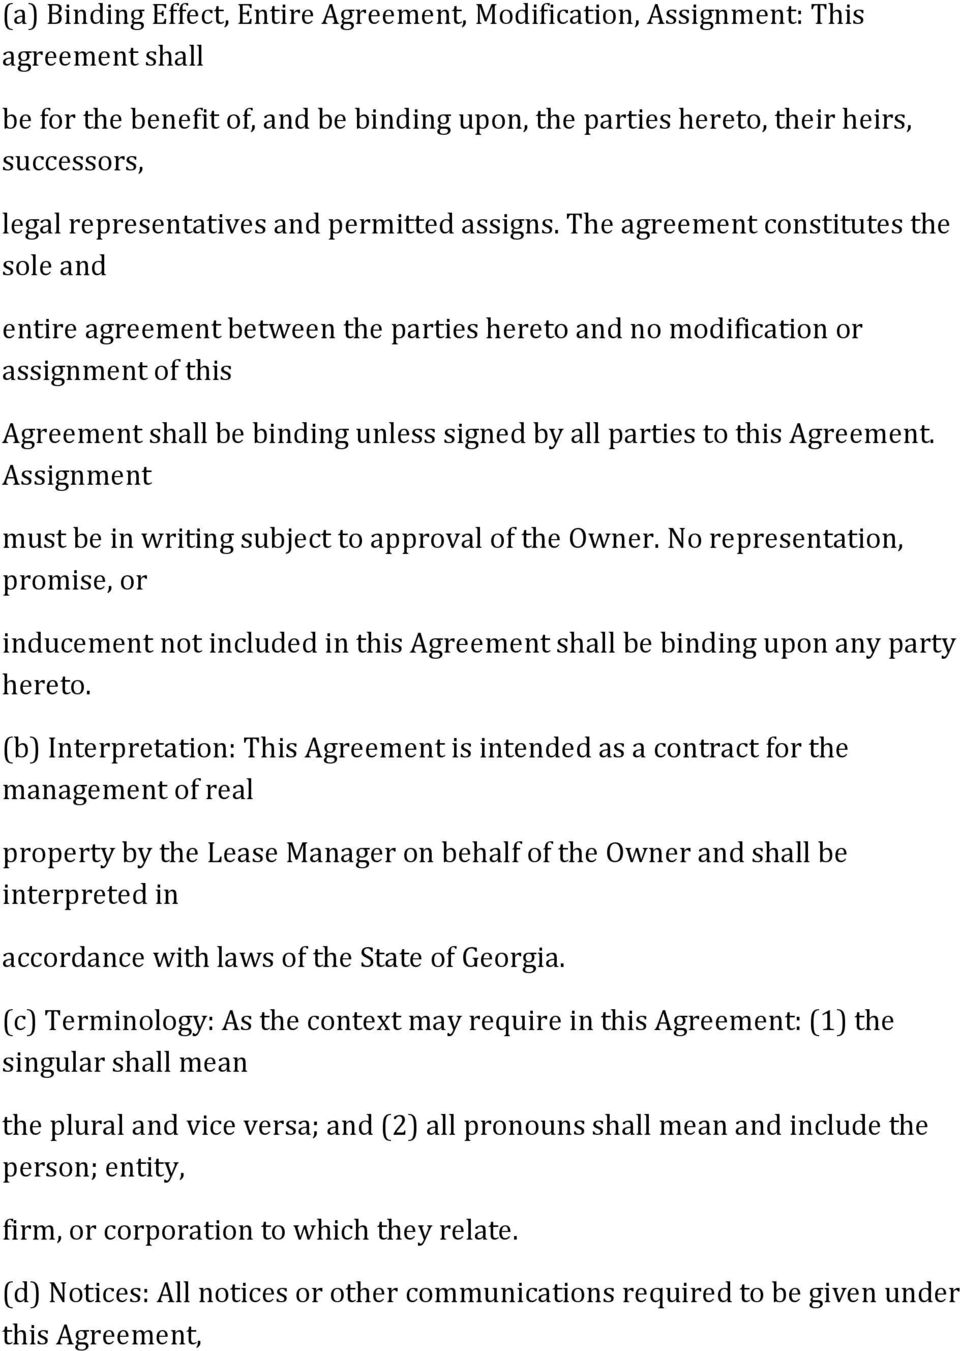 The agreement constitutes the sole and entire agreement between the parties hereto and no modification or assignment of this Agreement shall be binding unless signed by all parties to this Agreement.